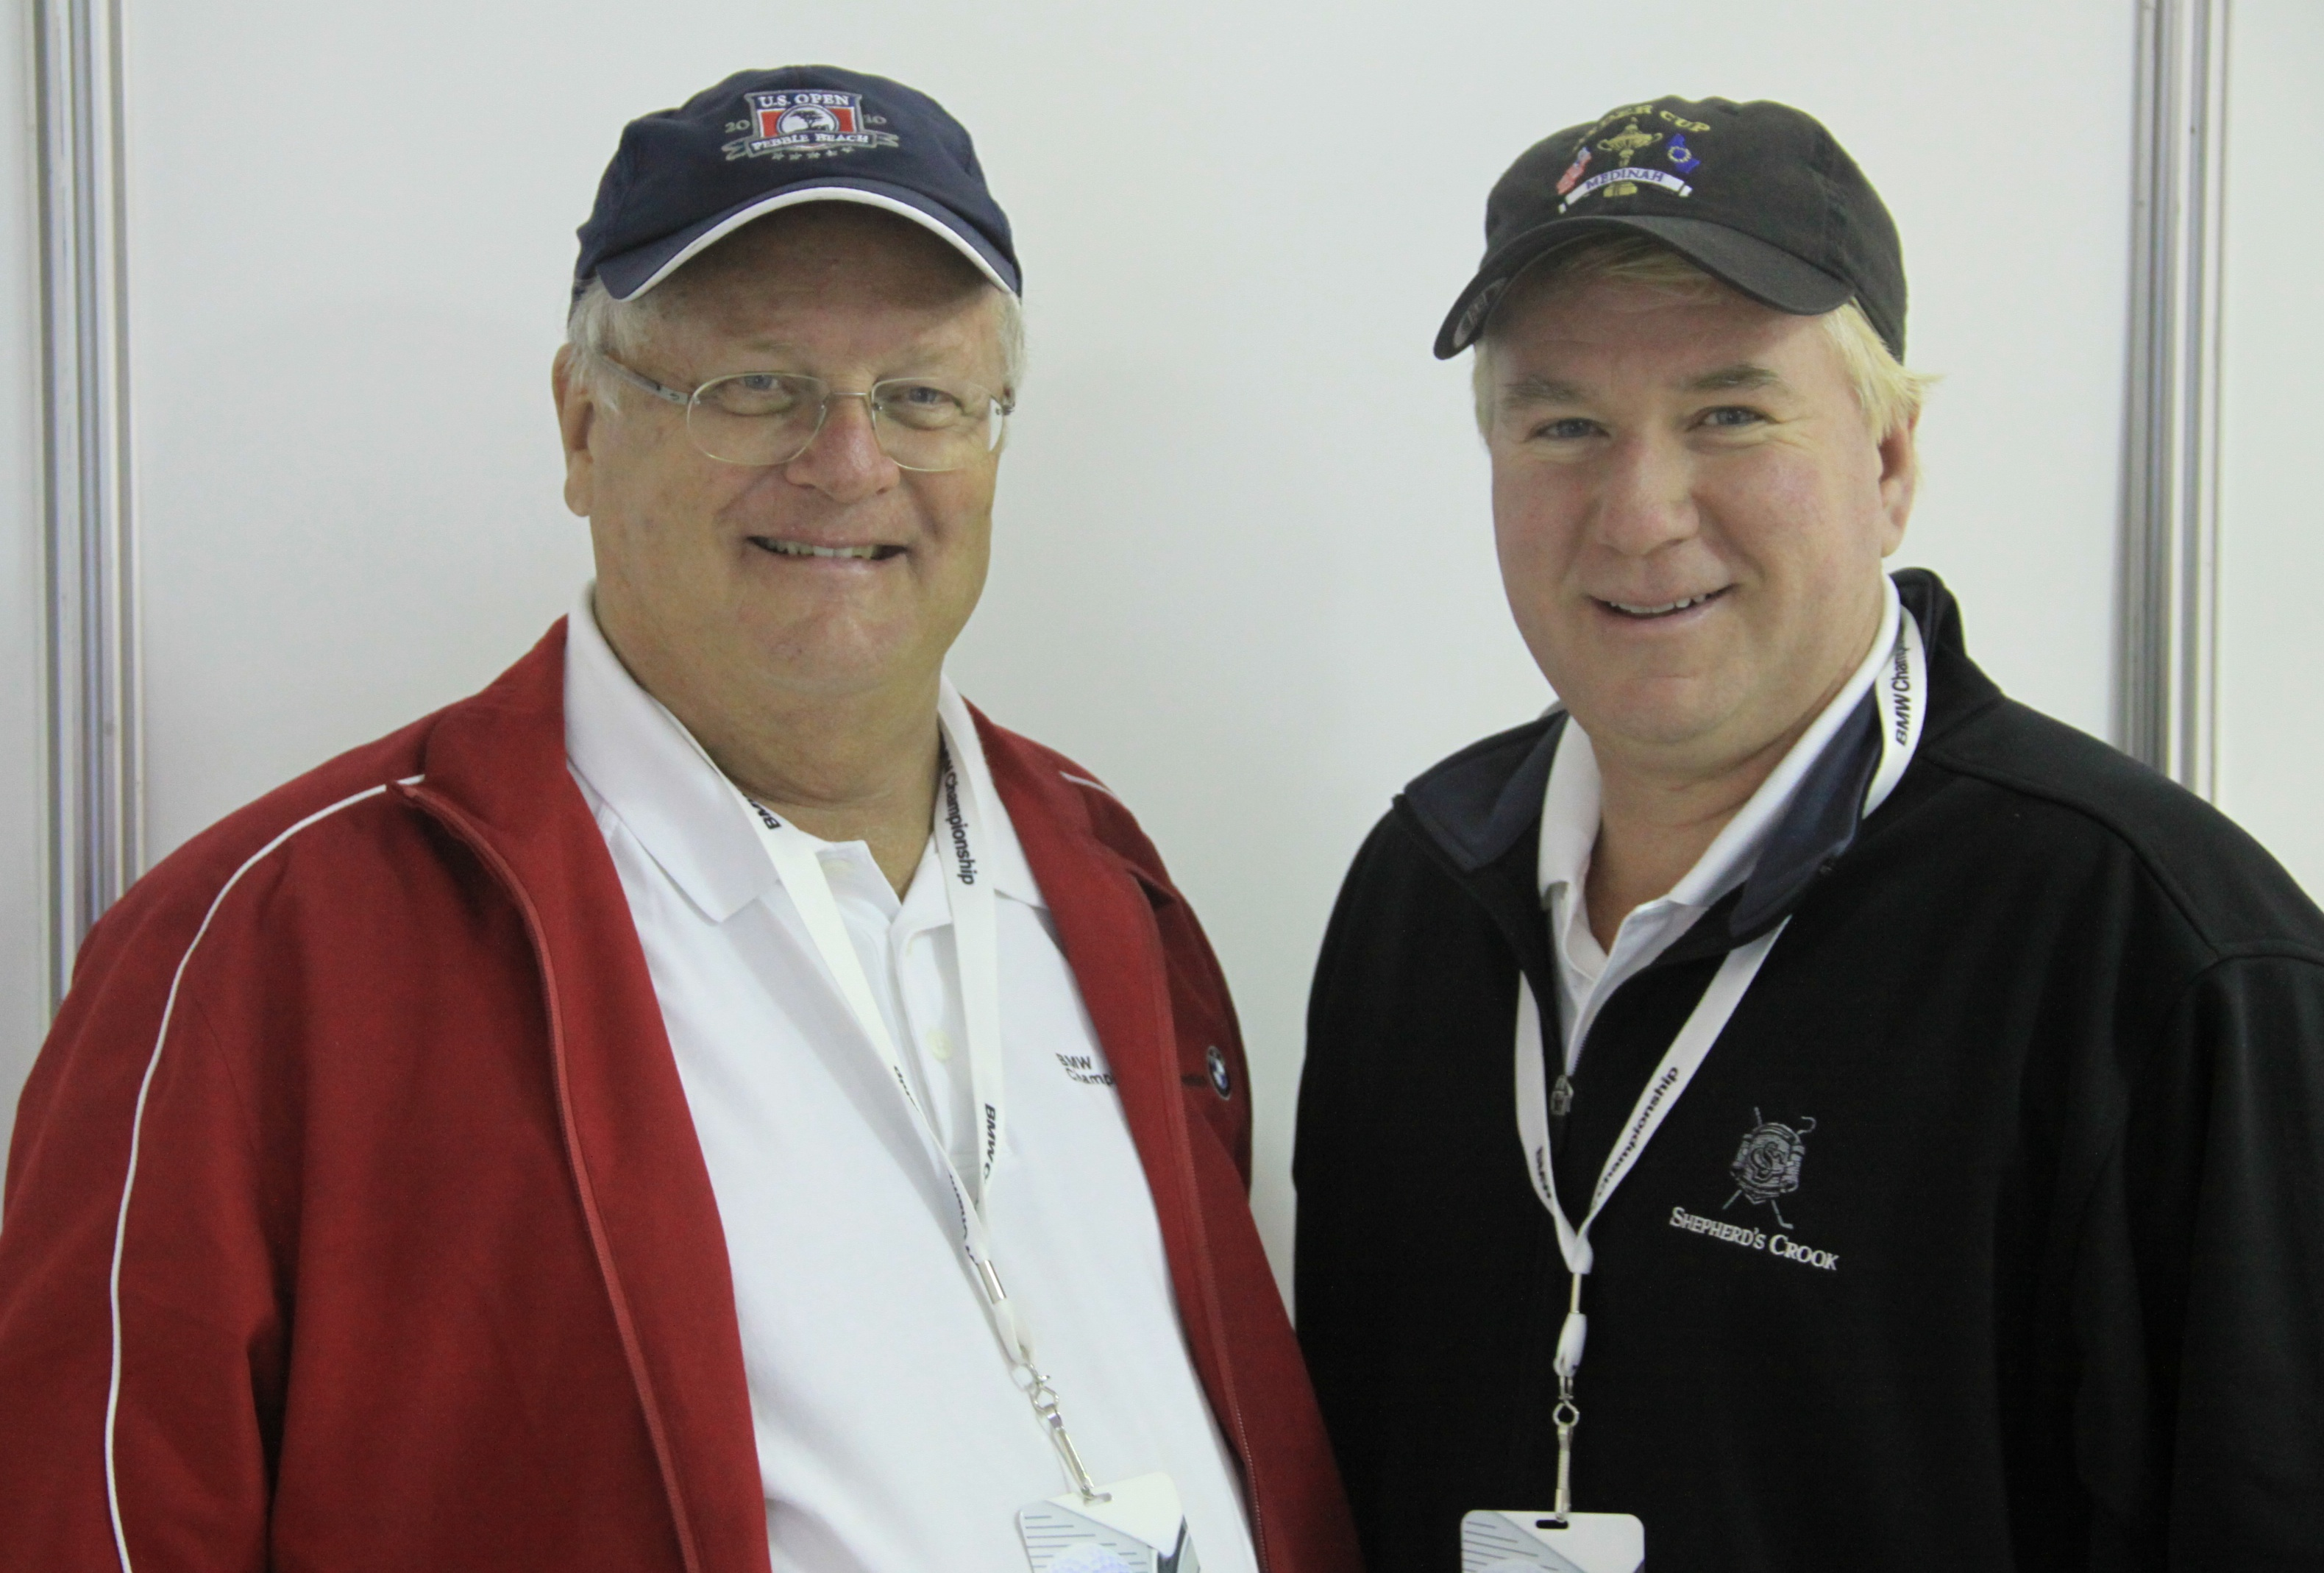 With radio veteran Rory Spears, fellow columnist with Chicago Area Golf.